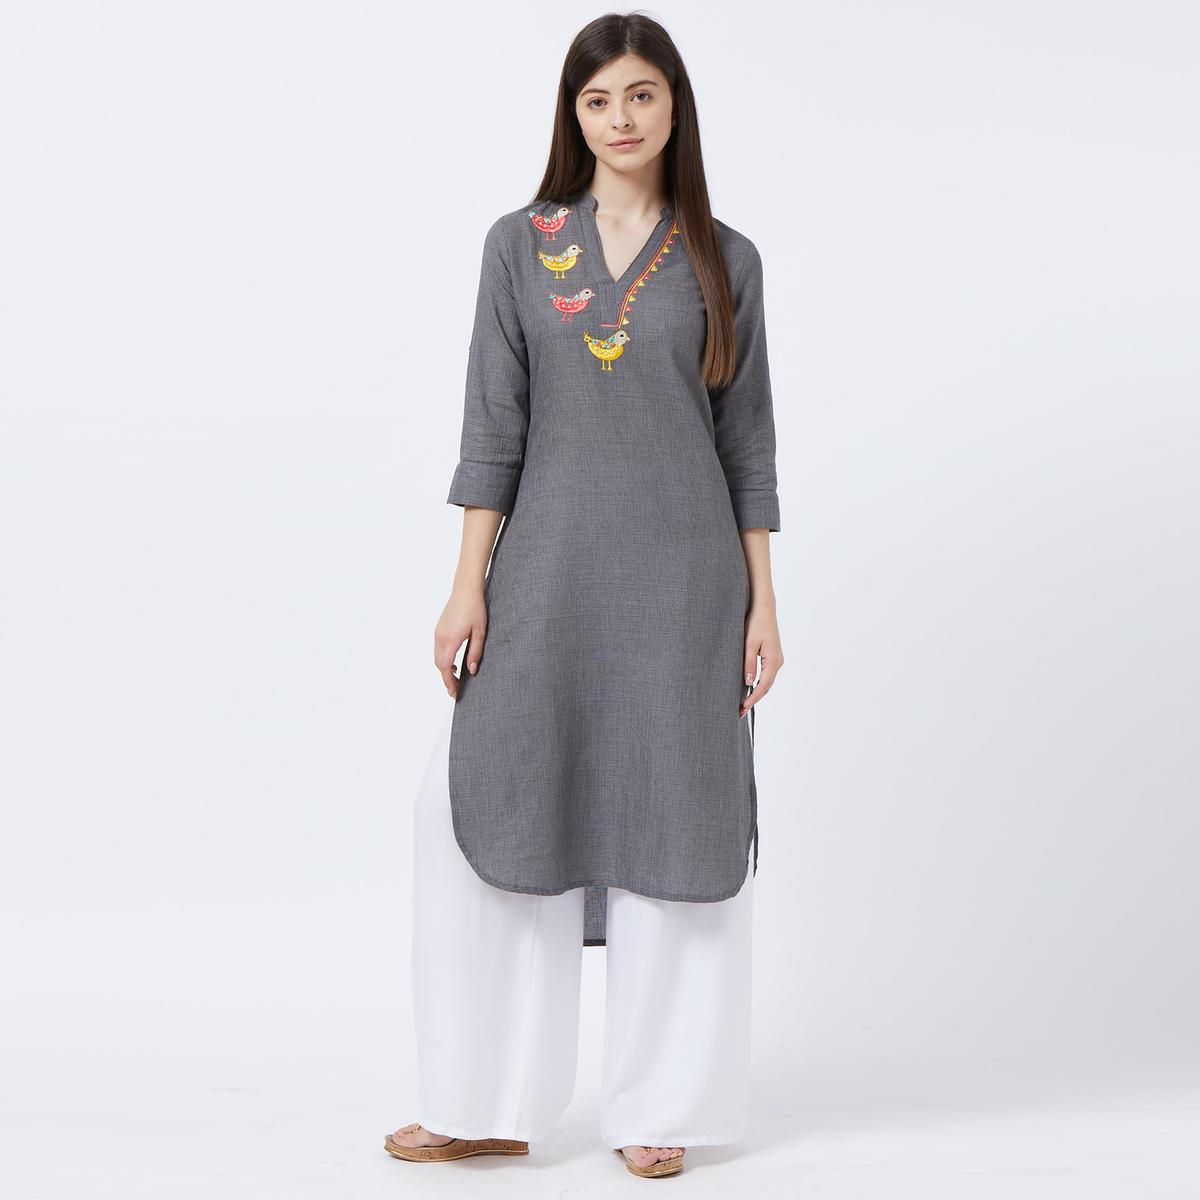 Pleasance Gray Colored Partywear Embroidered Cotton Long Kurti